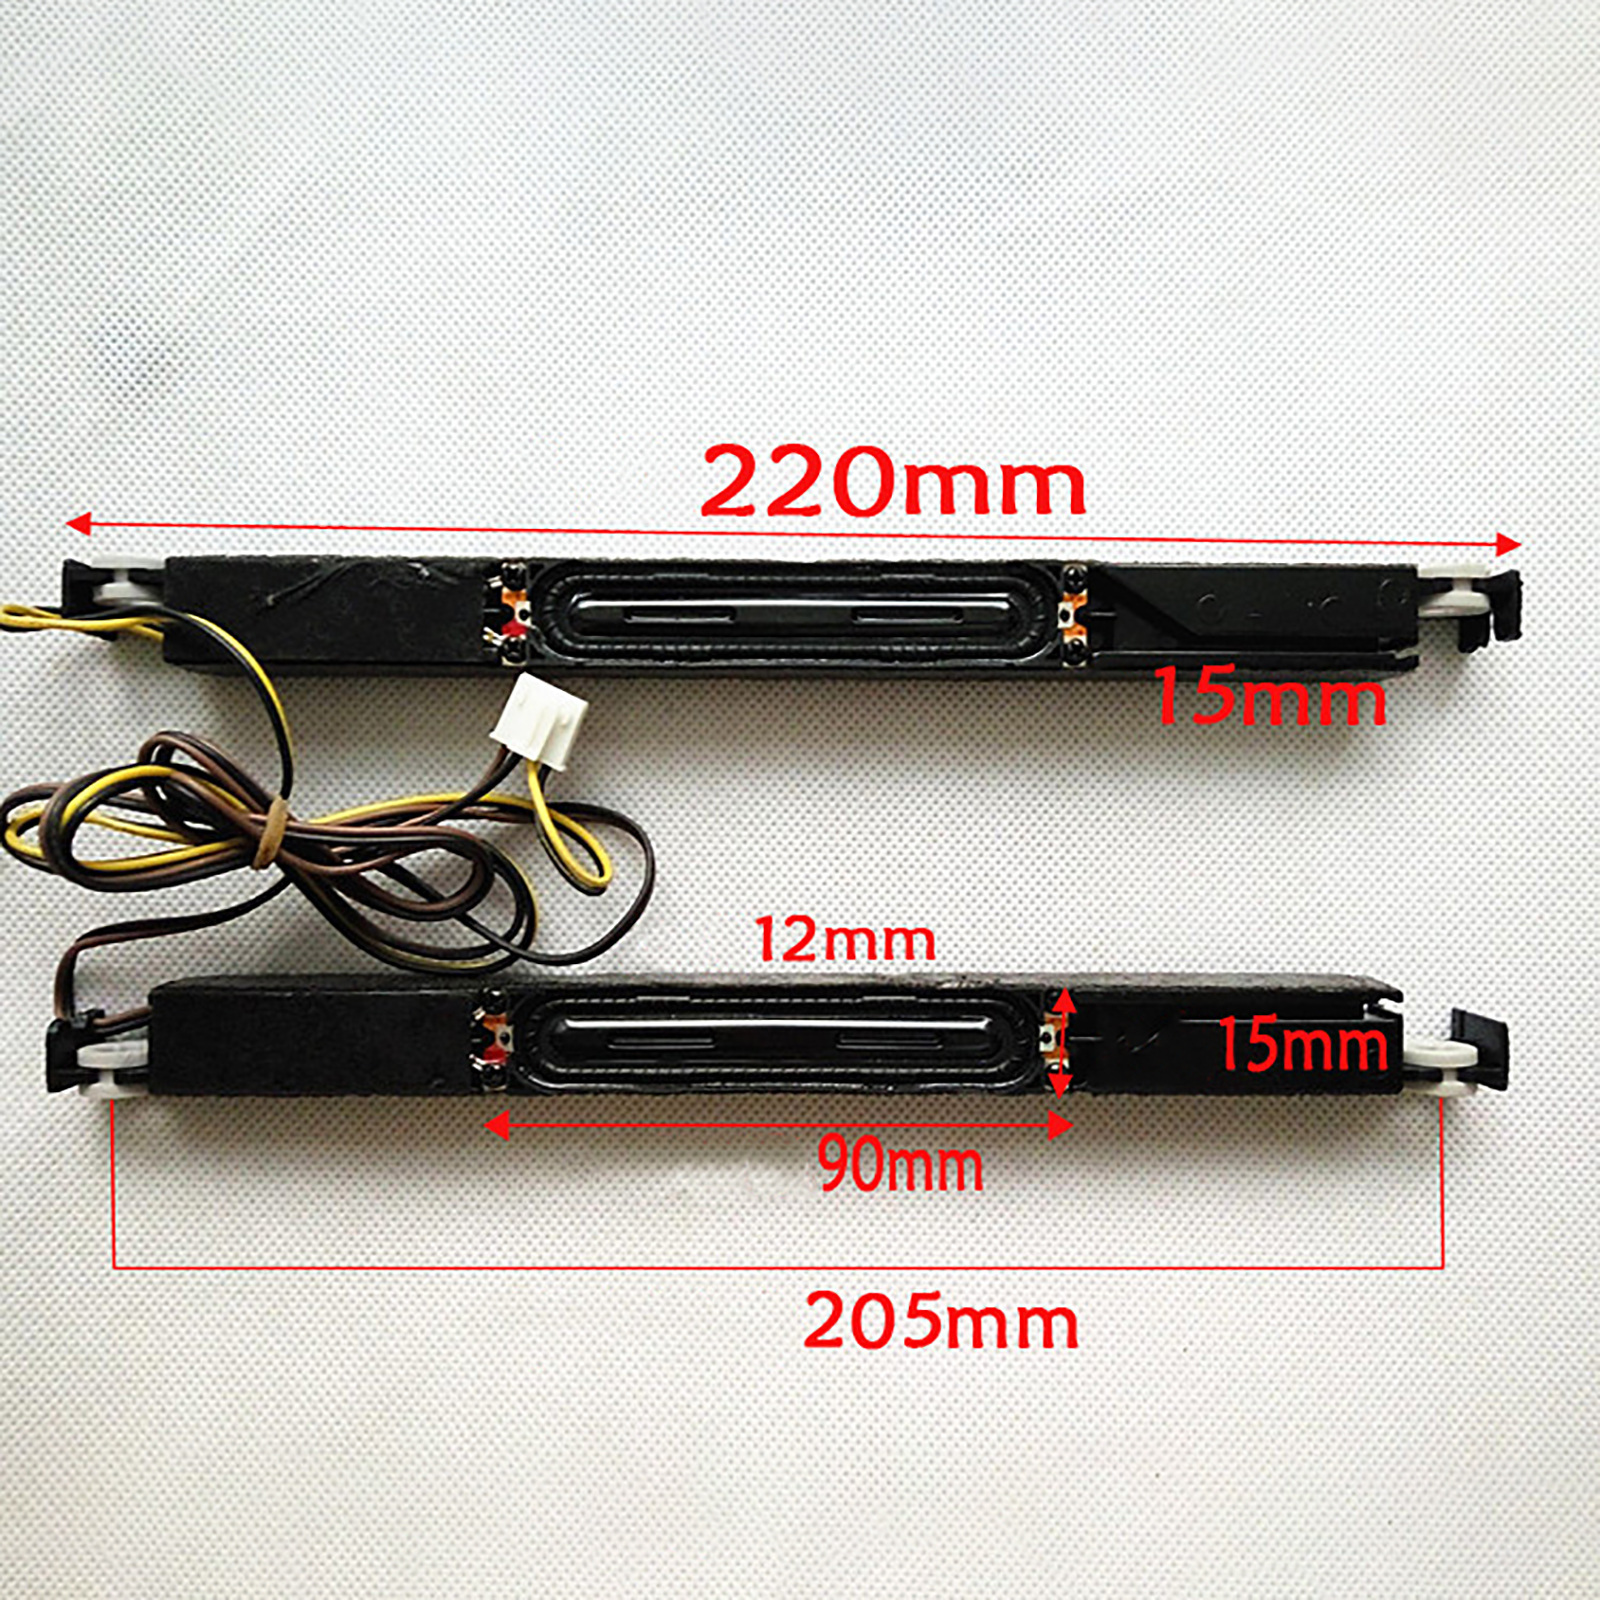 LCD TV Speaker For Samsung BN96-12941D 8 Ohms 10W R101206JY TV Speaker